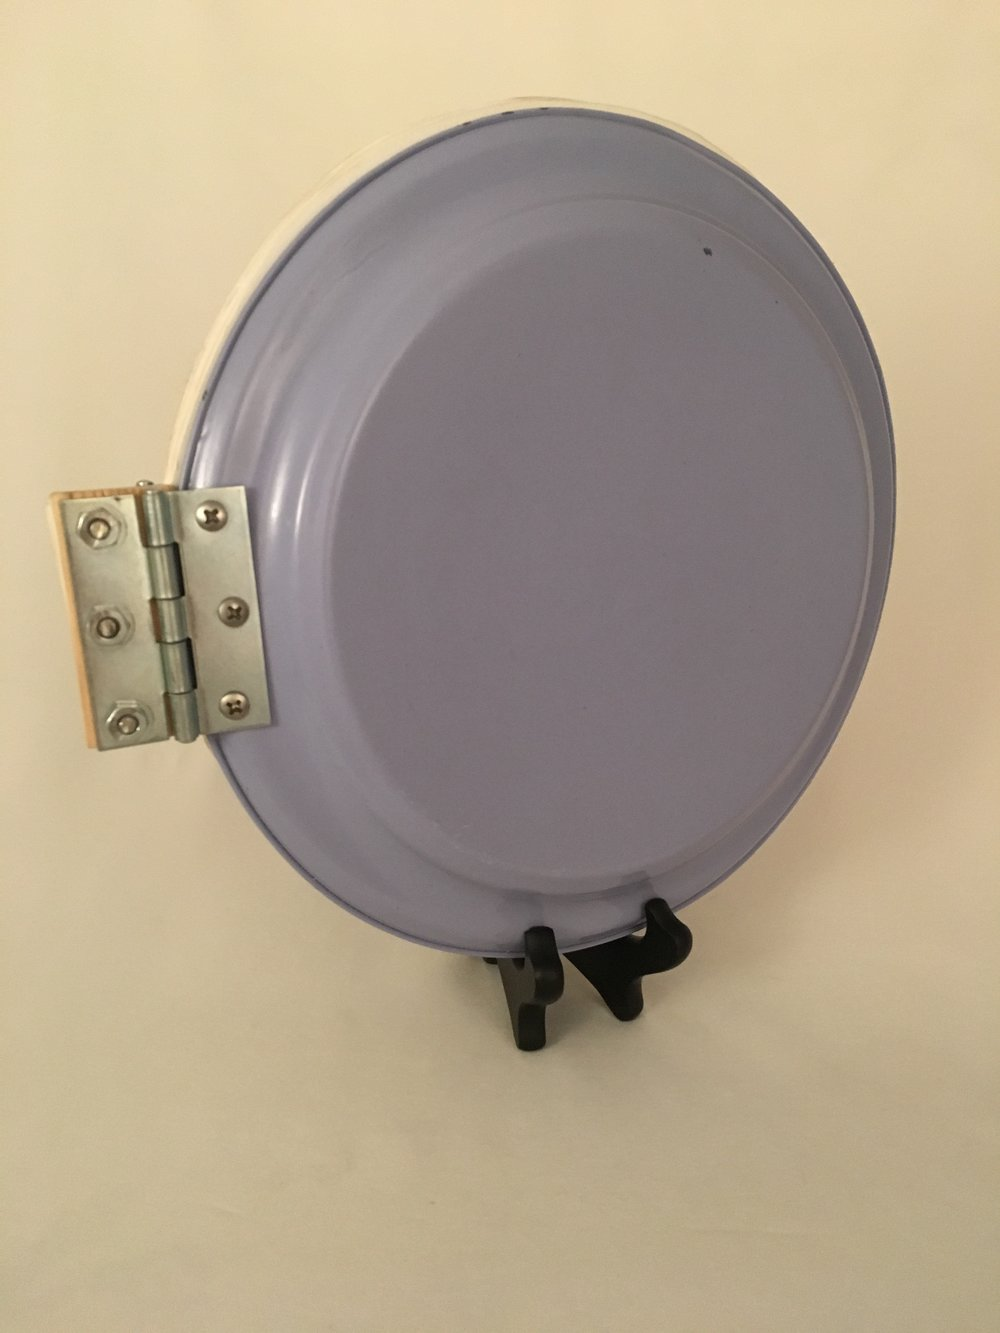 Tin Plate inspired by Utility